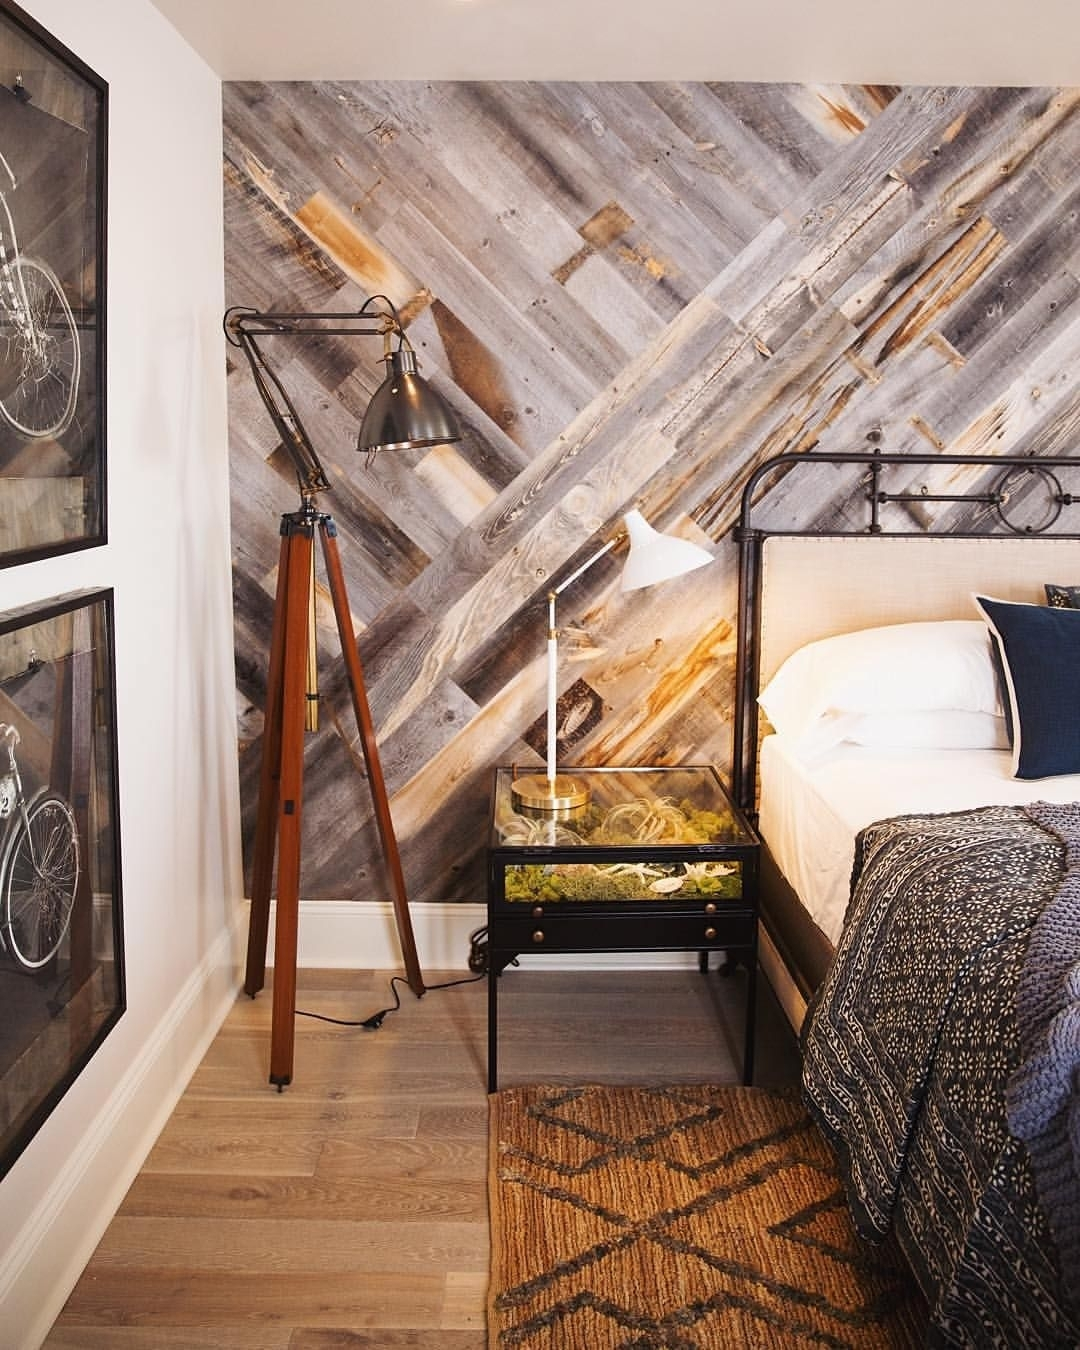 Diy Easy Peel And Stick Wood Wall Decor | Wood Walls, Reclaimed Throughout Latest Wood Pallets Wall Accents (View 15 of 15)